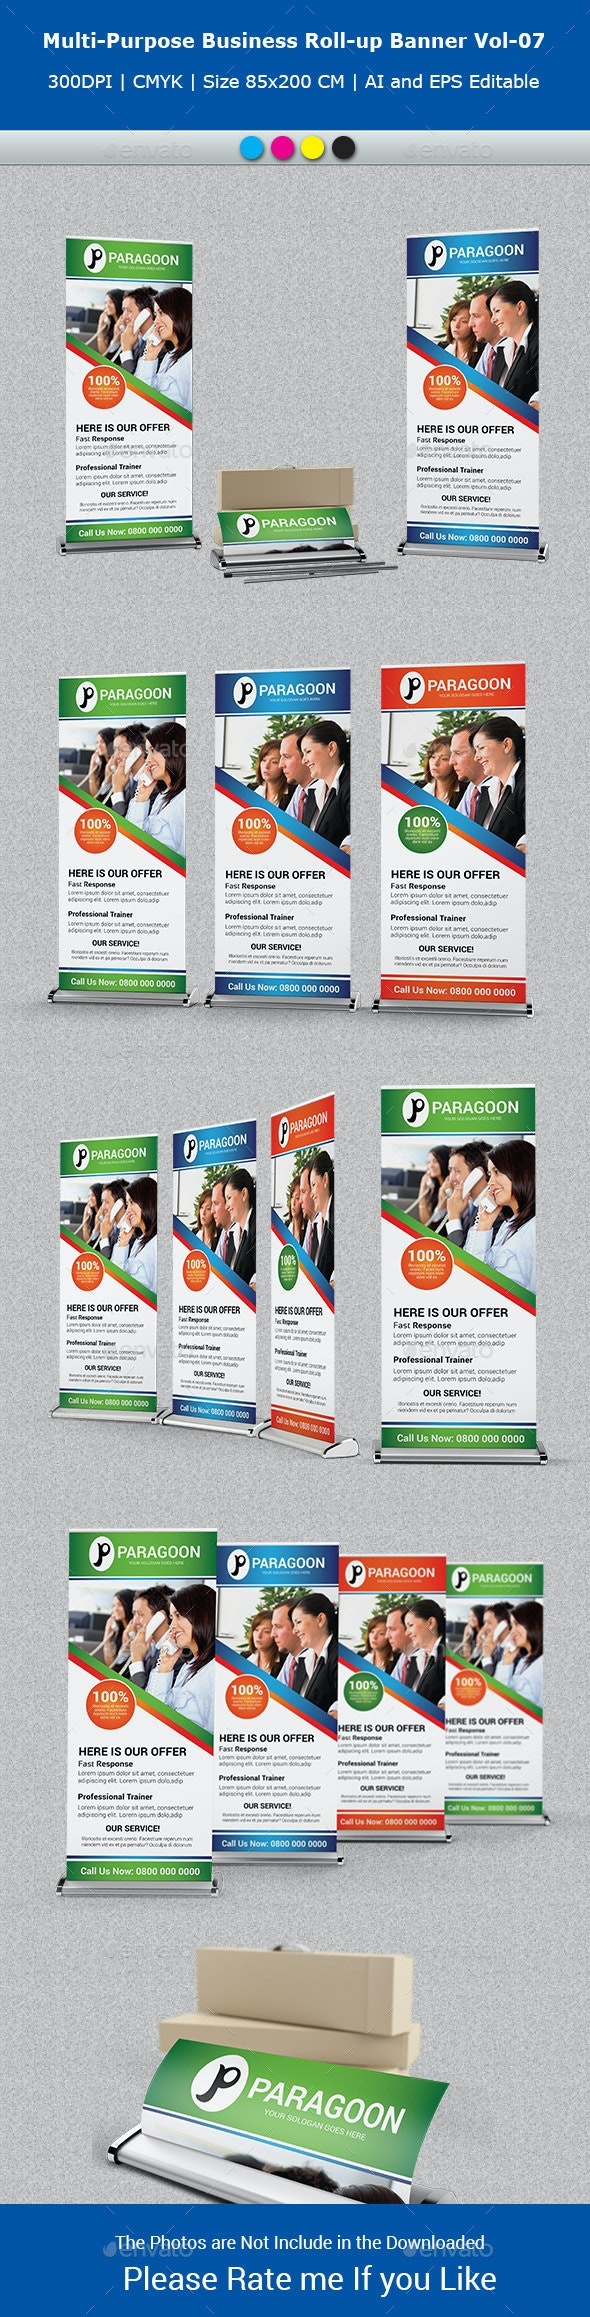 Multipurpose Business Roll-Up Banner Vol-07 - Signage Print Templates